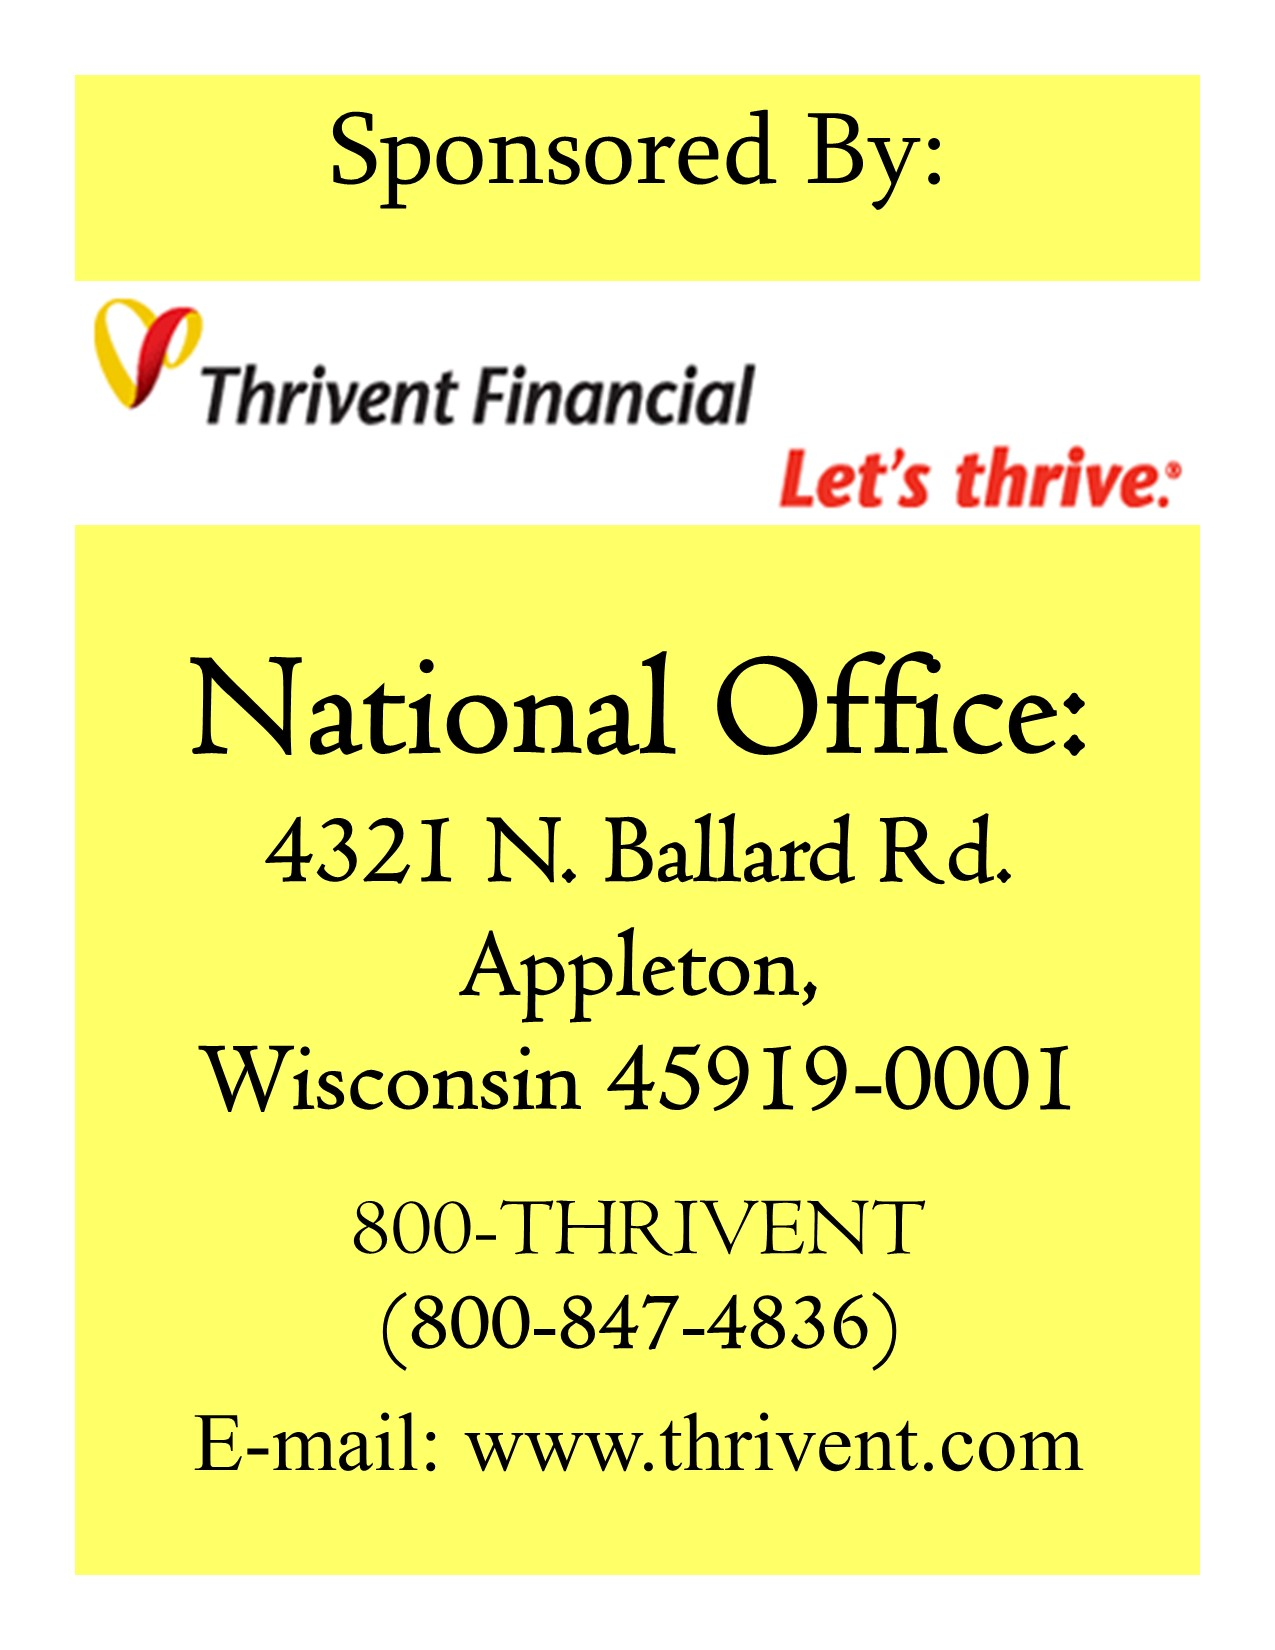 Thrivent national09